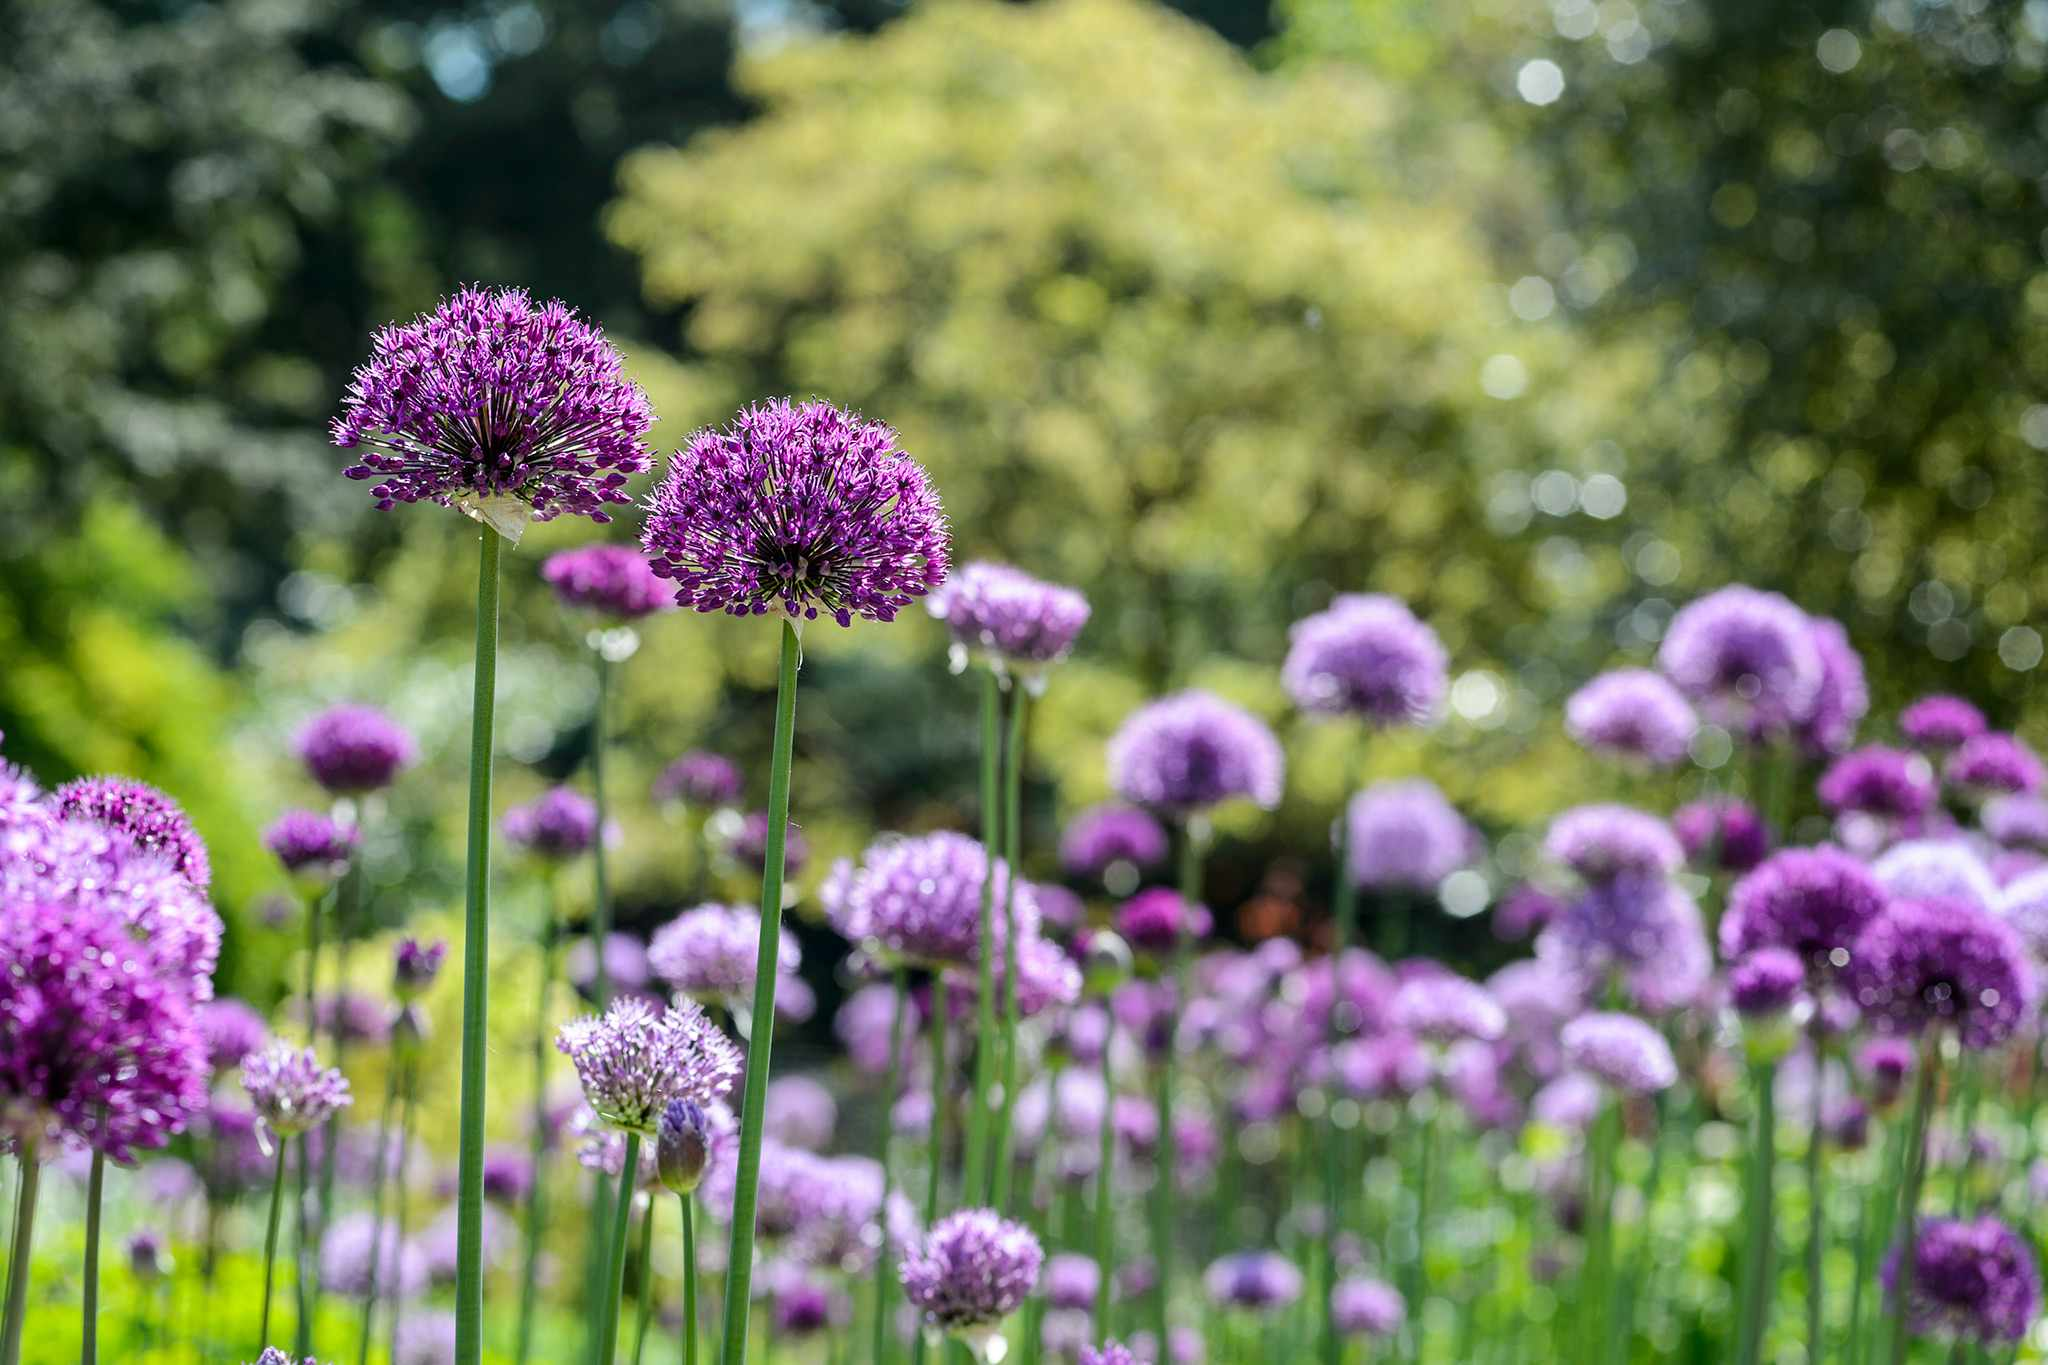 Alliums in flower